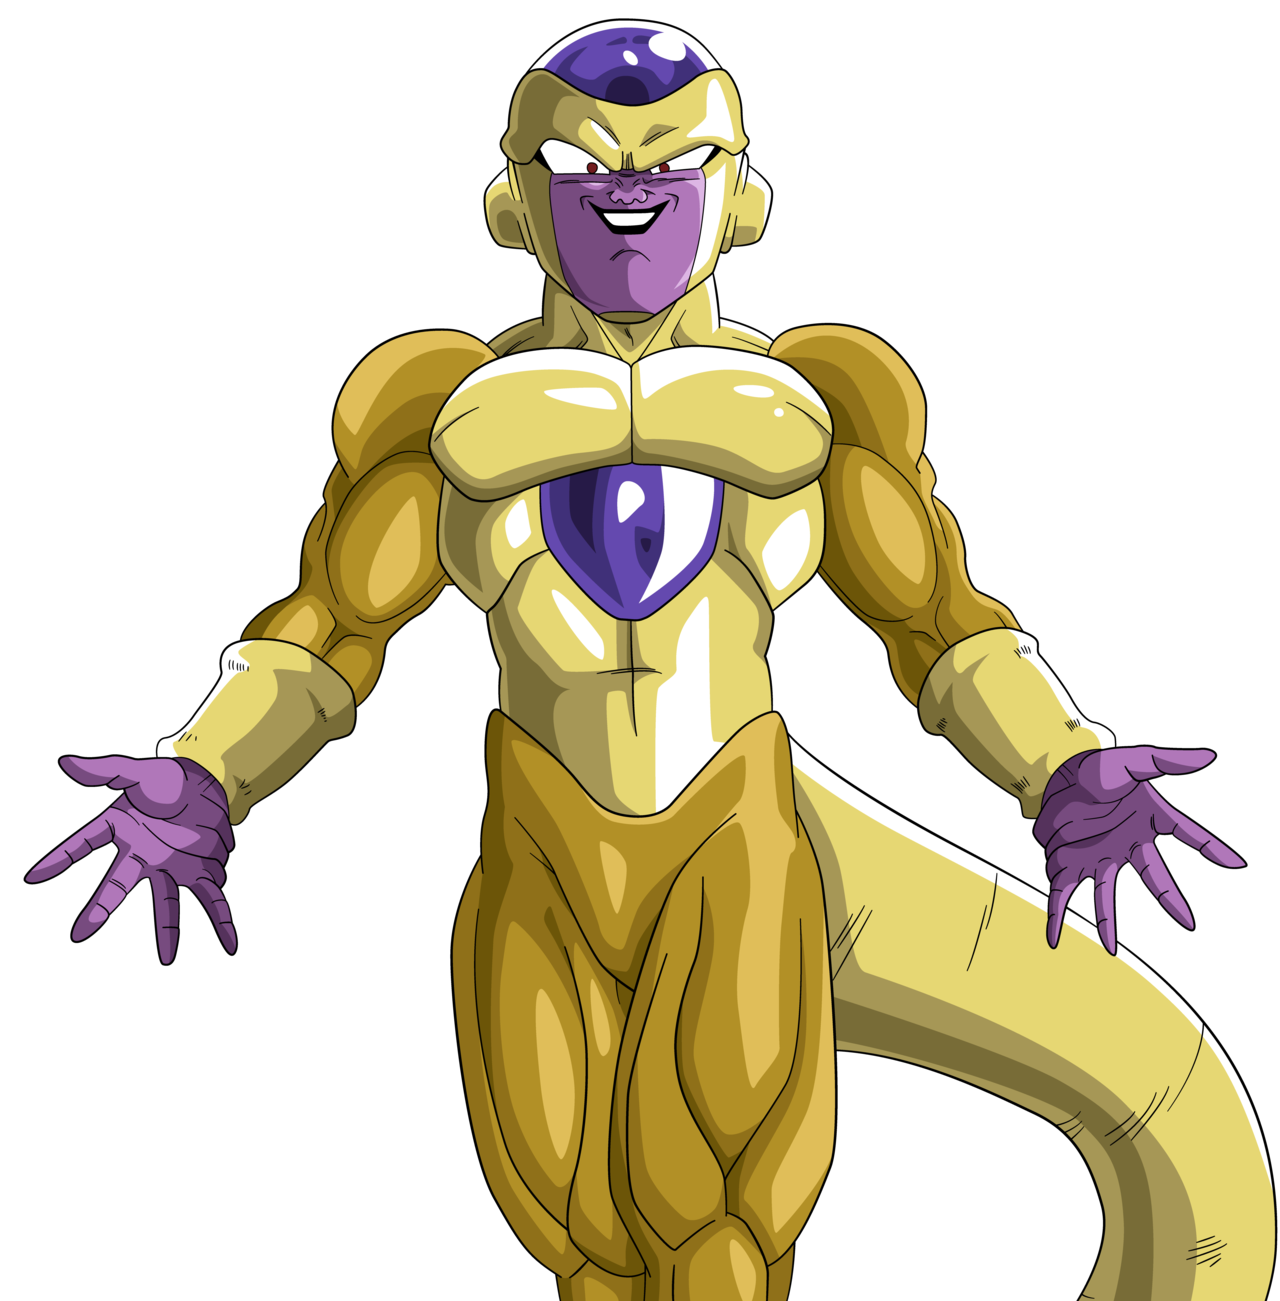 Image - Golden frieza dragonball heroes by rayzorblade189-d8ulie9.png | Dragonball Fanon Wiki